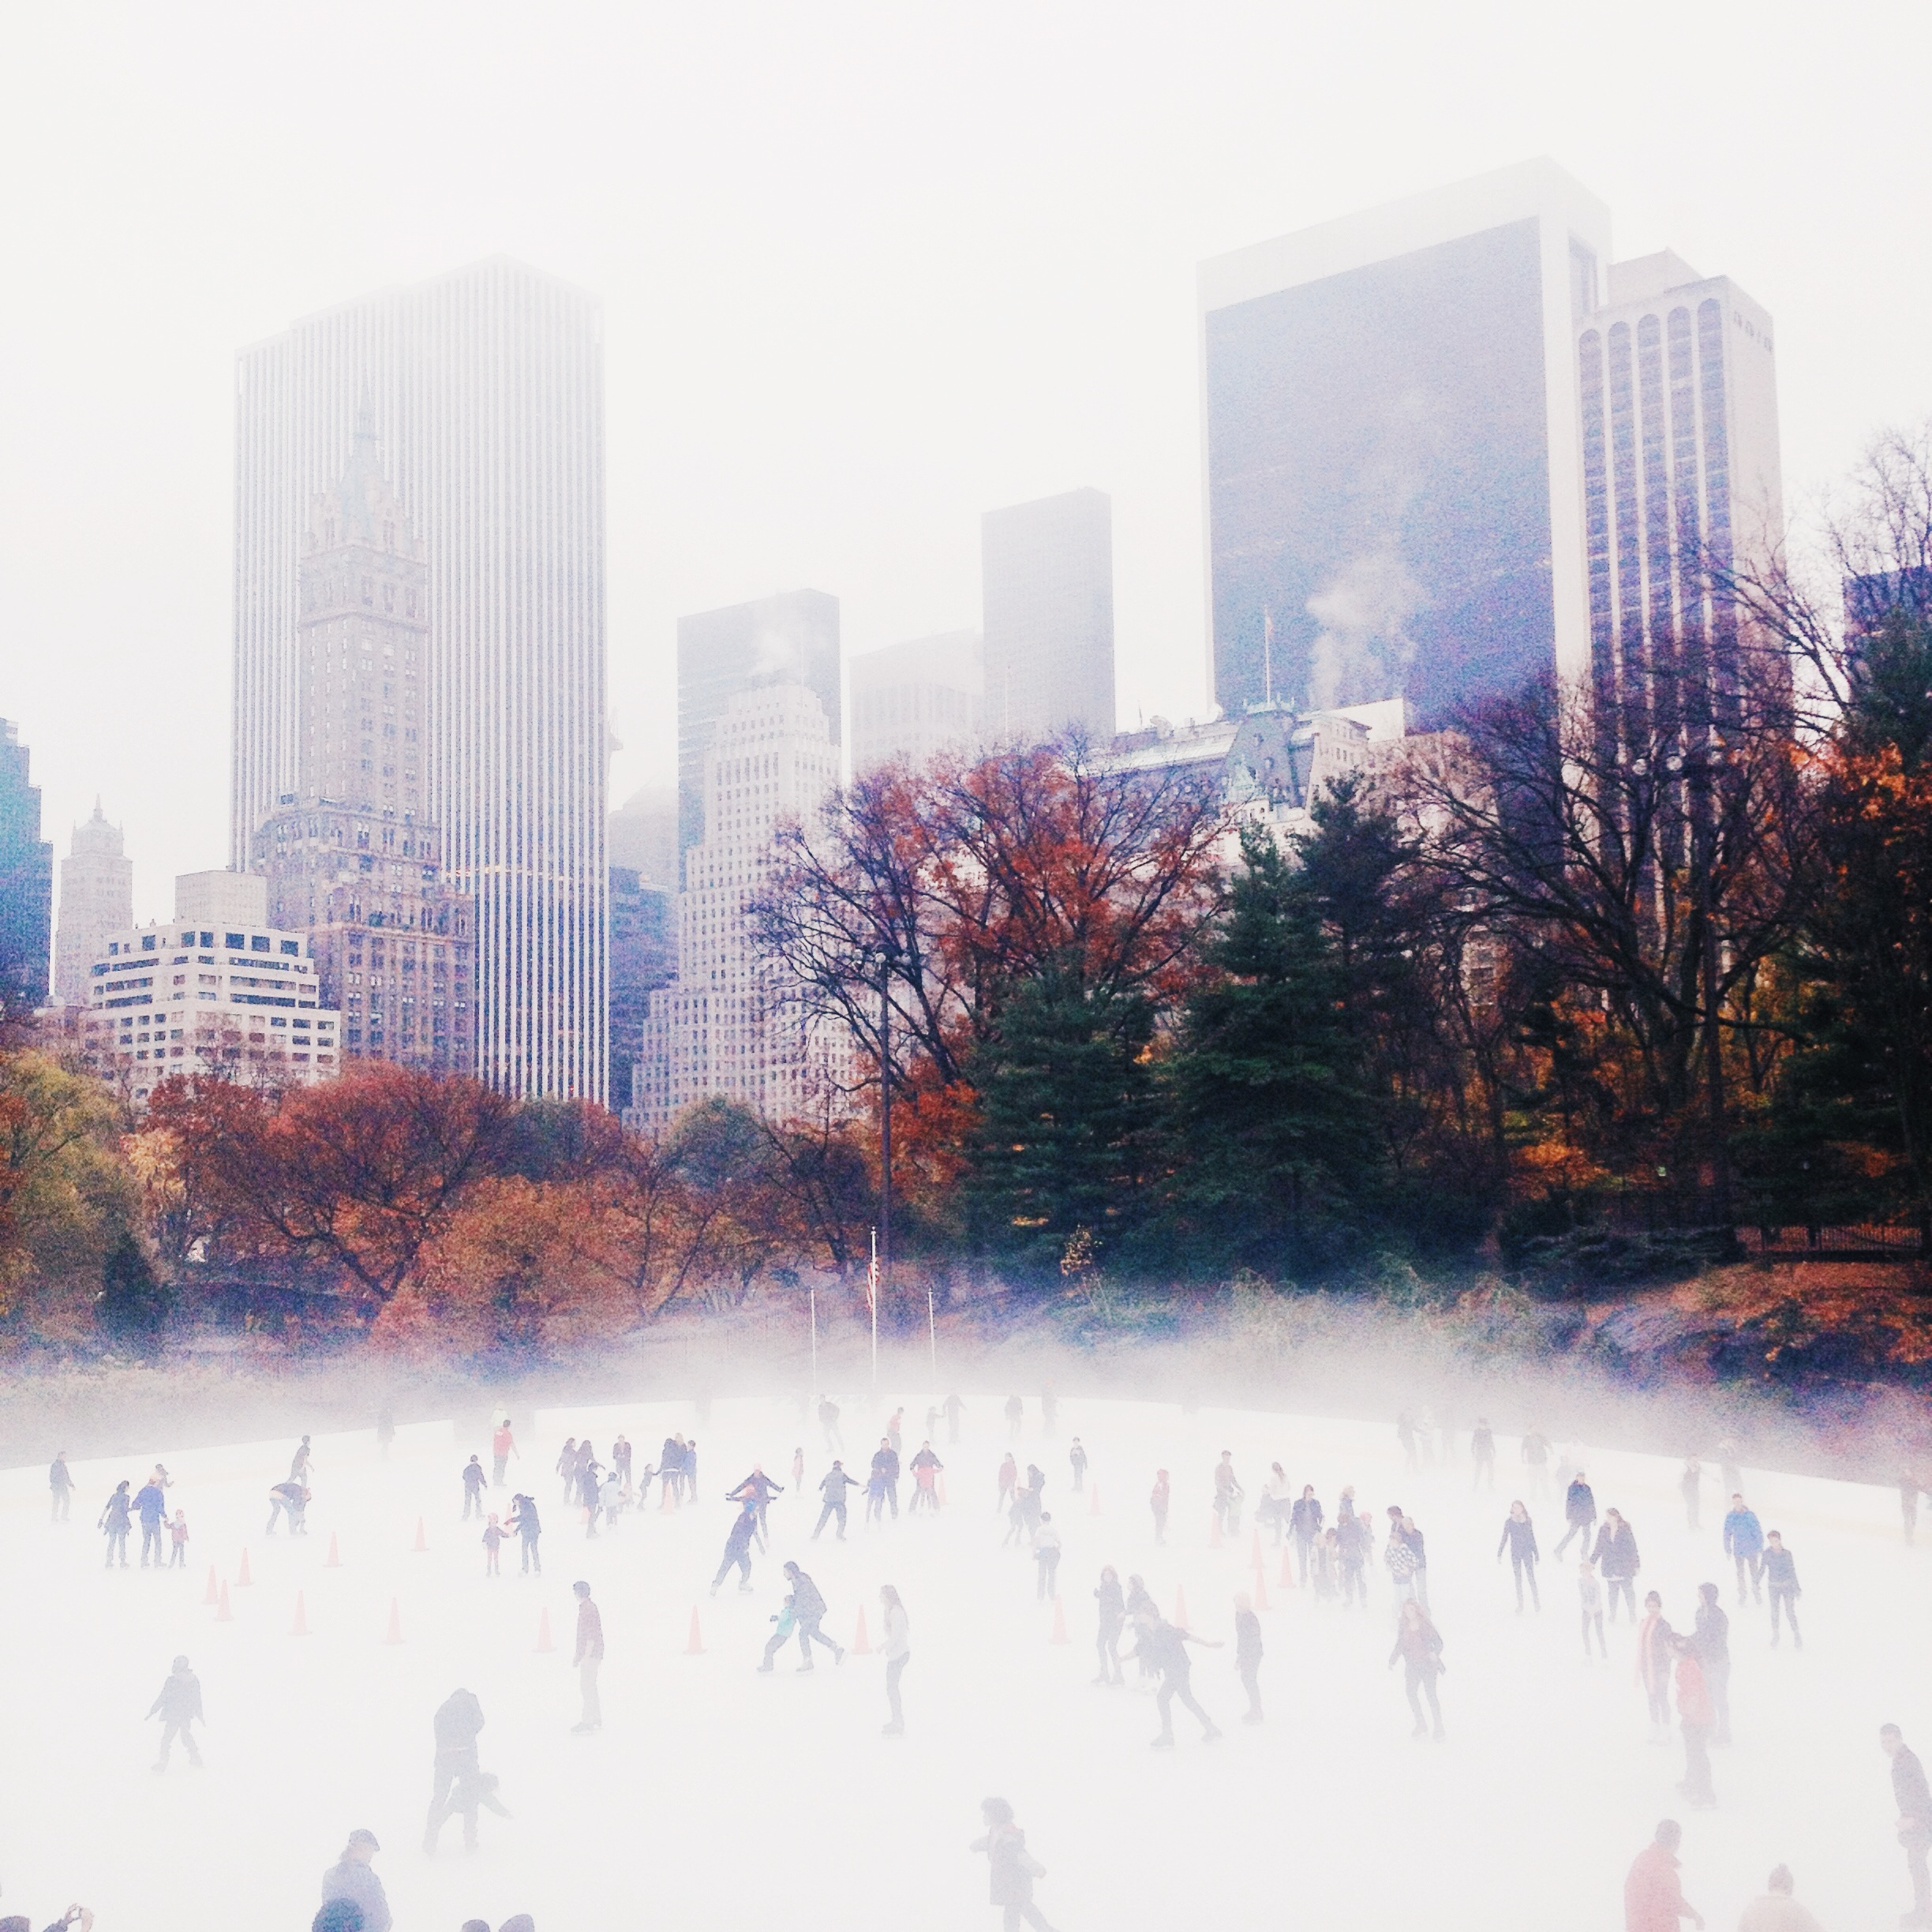 Ice Rink in Central Park, New York.